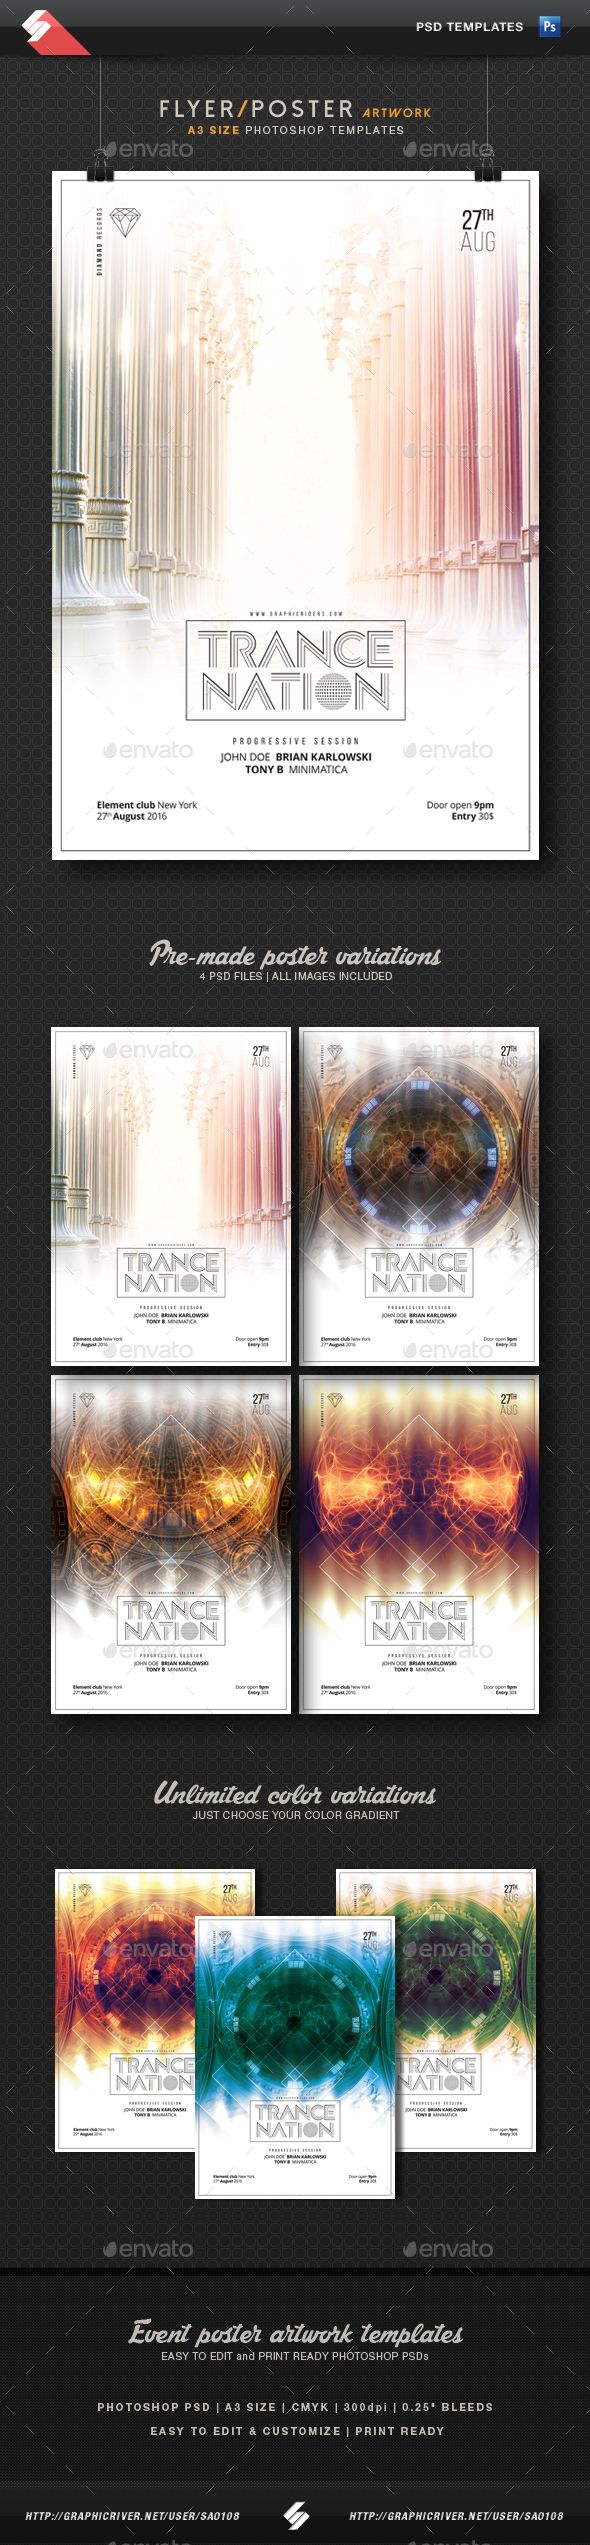 Trance Nation - Party Flyer Templates A3